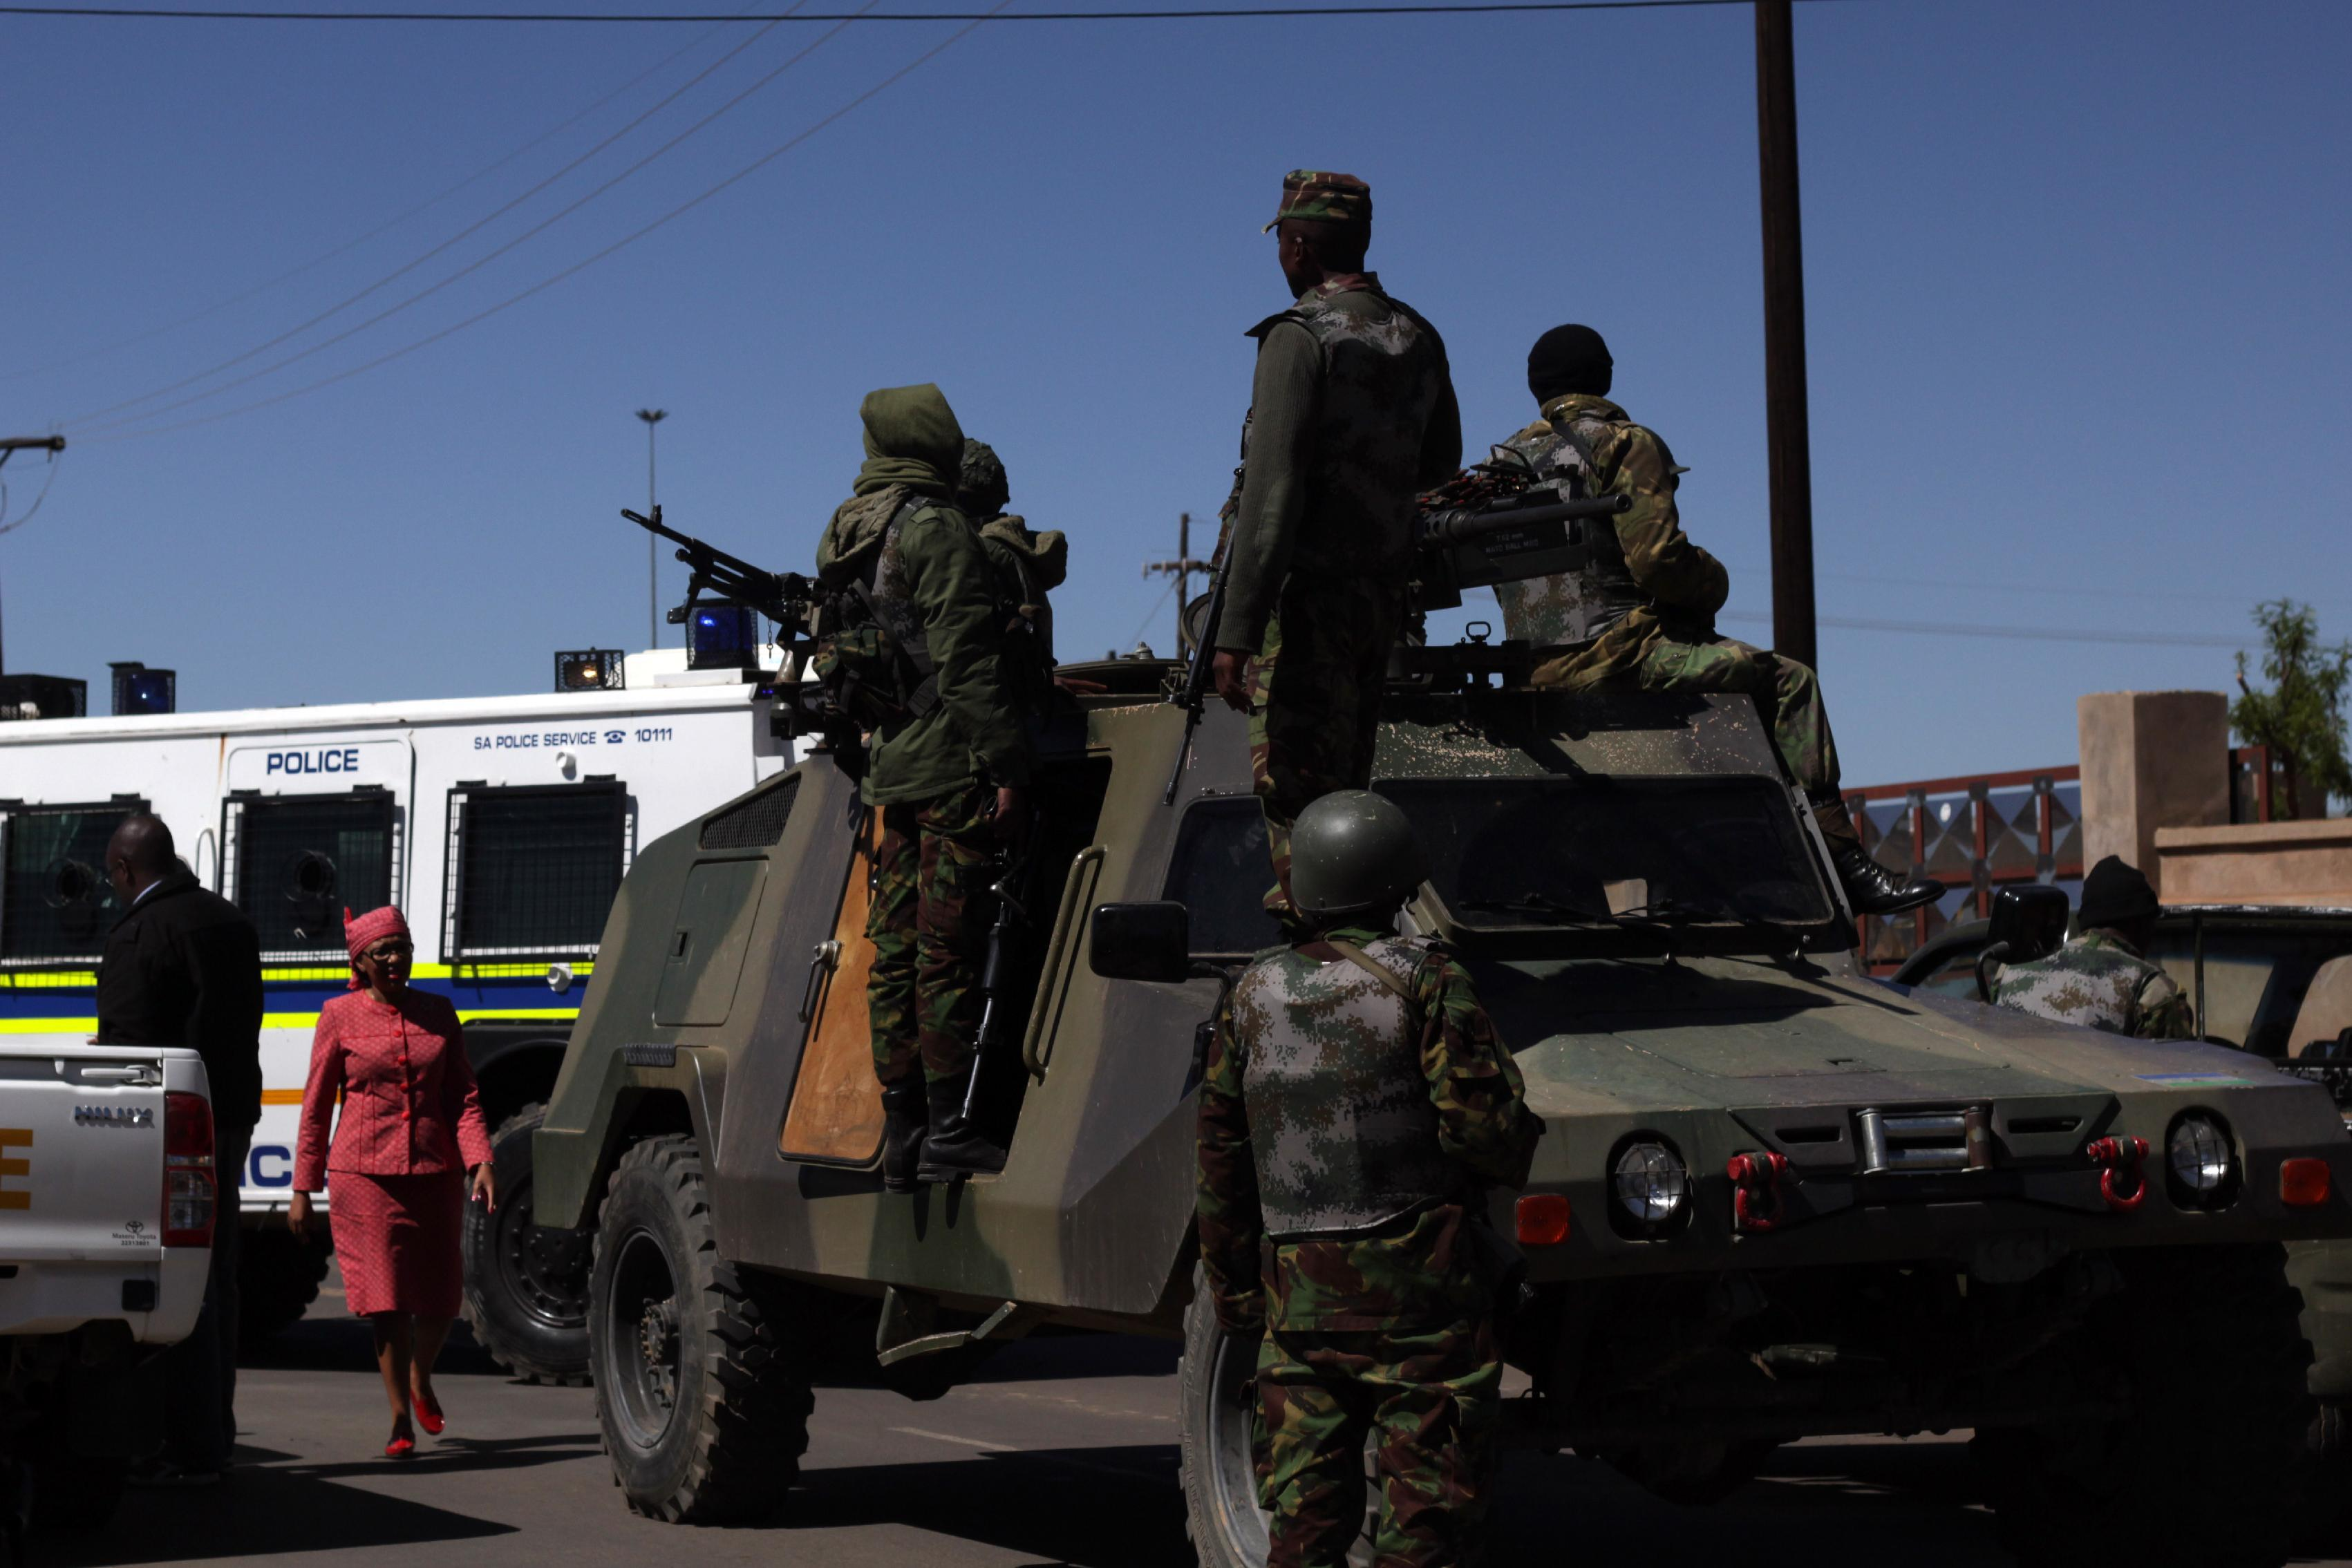 Members of the Lesotho national are seen next to a South African Police armoured vehicle outside Maseru on October 1, 2014 (AFP Photo/Hlompho Letsielo)